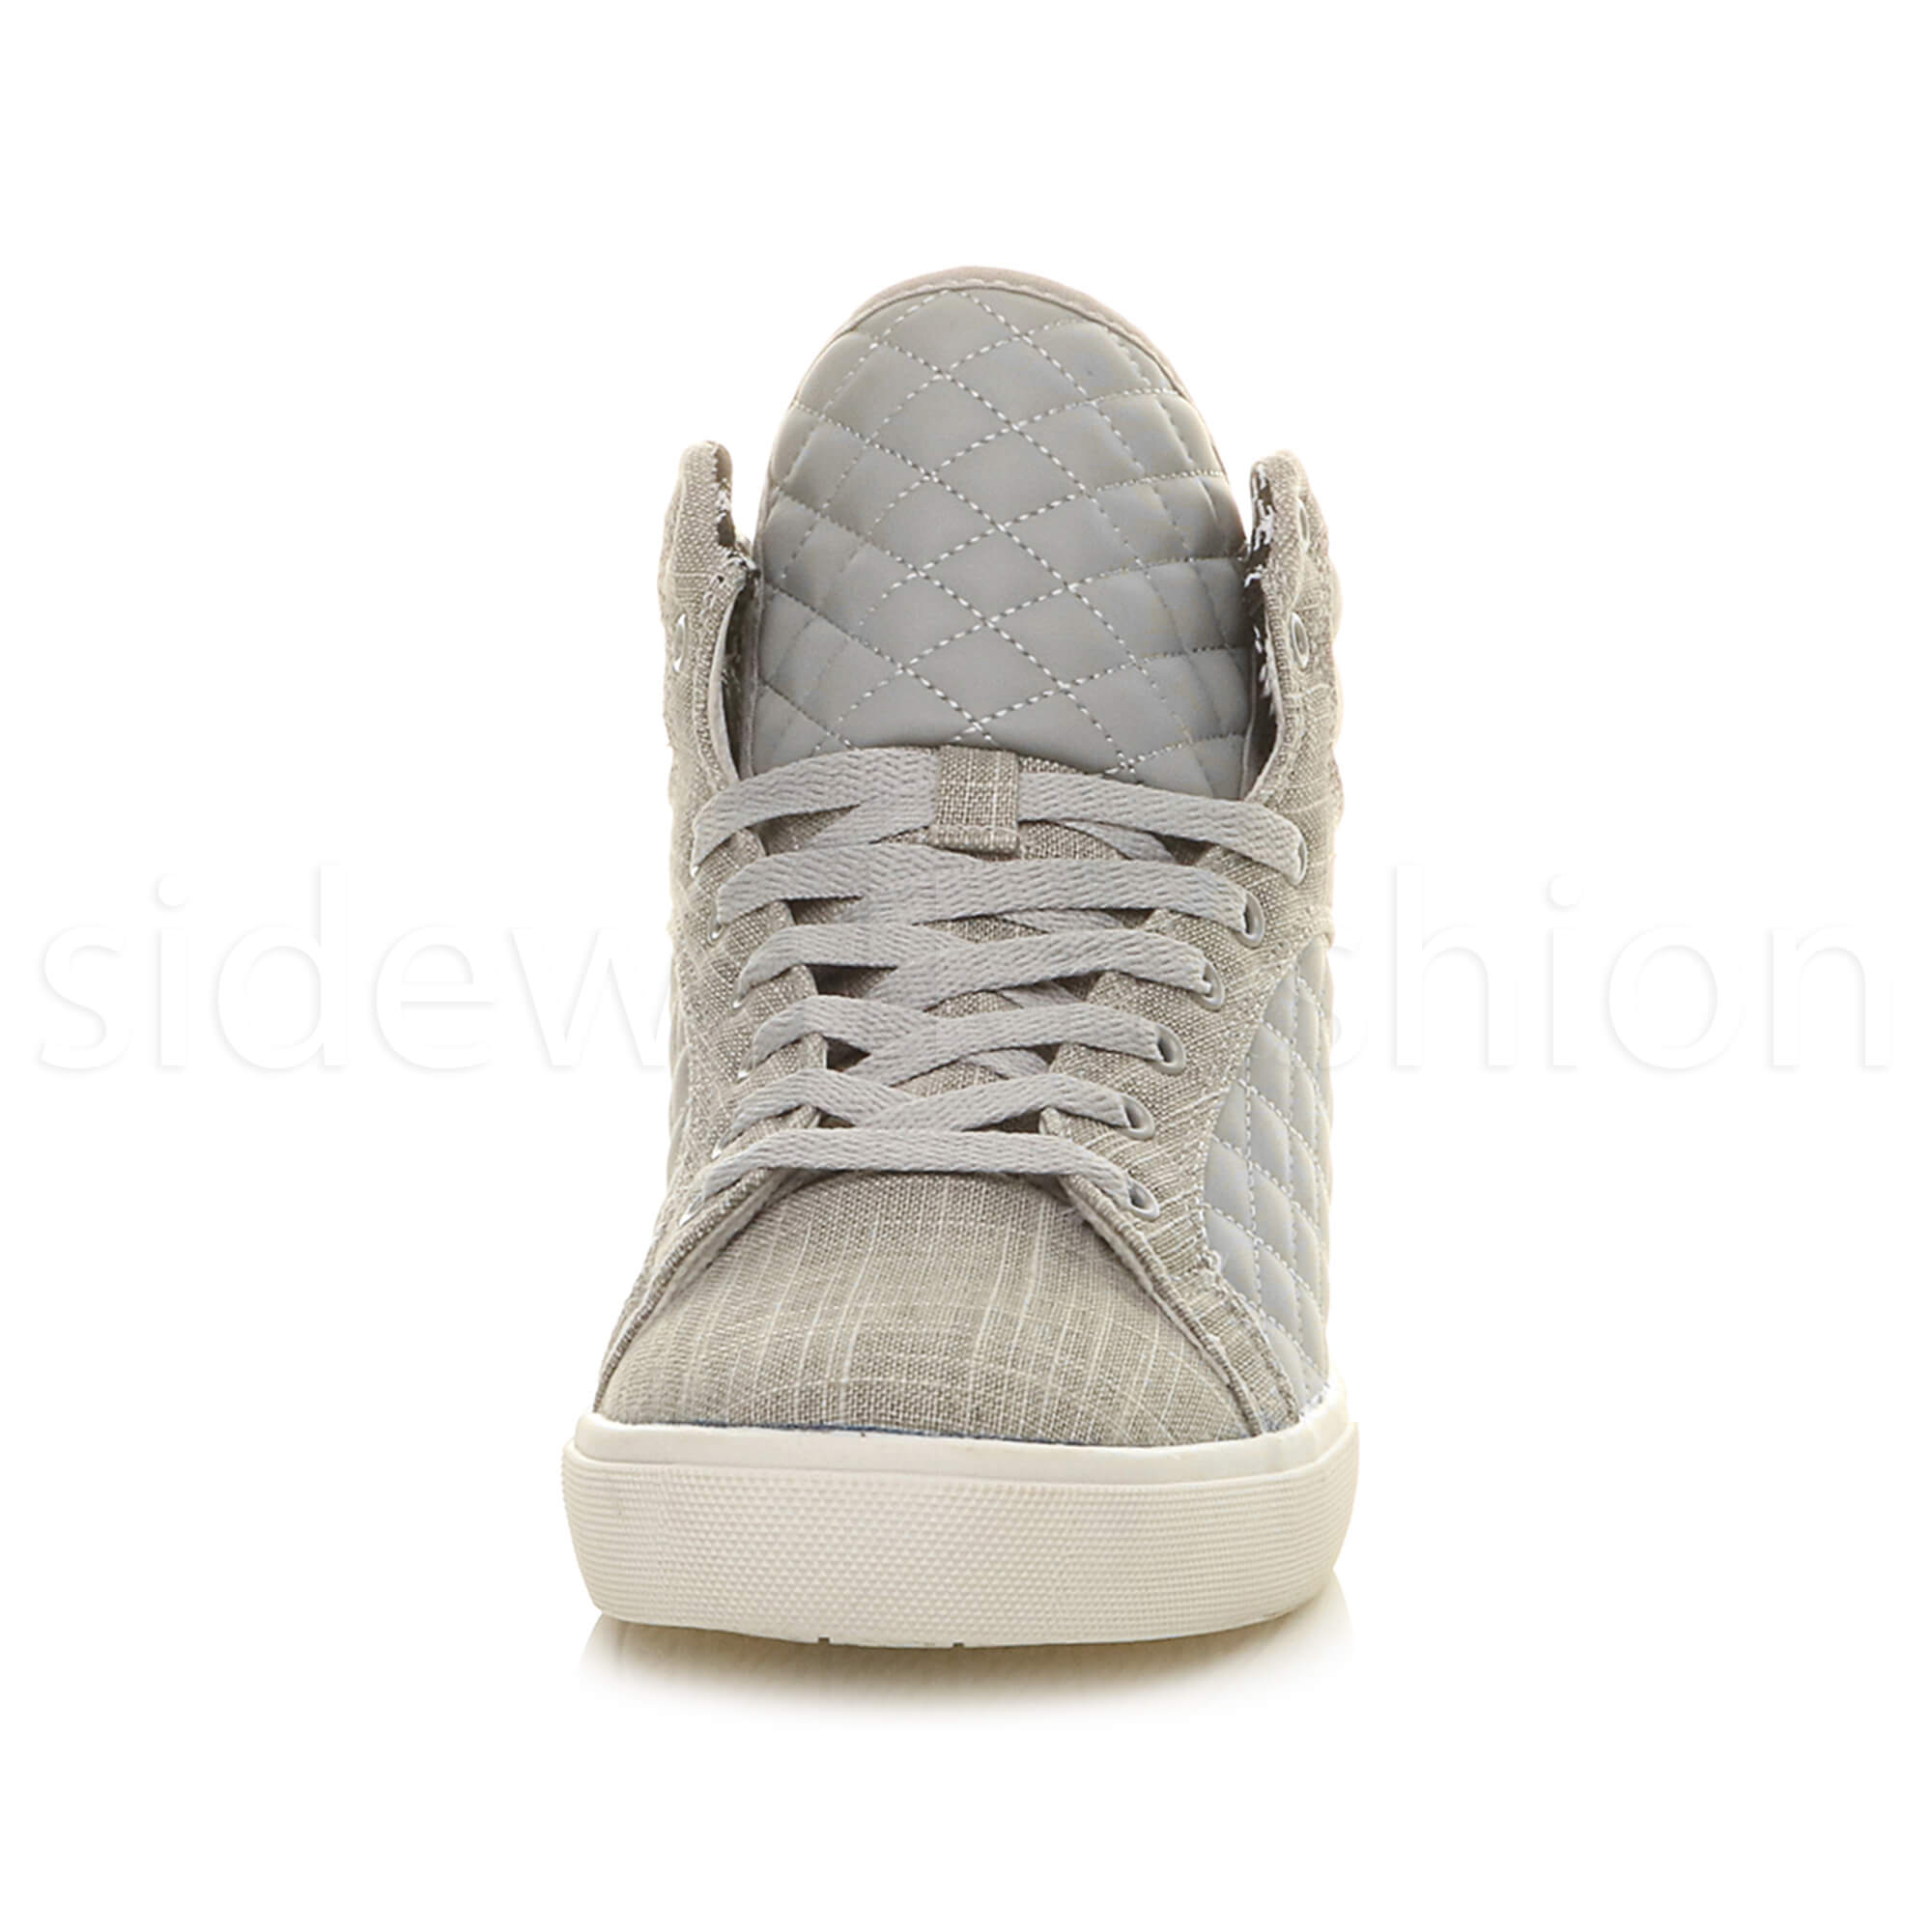 Mens-flat-lace-up-quilted-casual-hi-high-top-ankle-boots-trainers-sneakers-size thumbnail 21